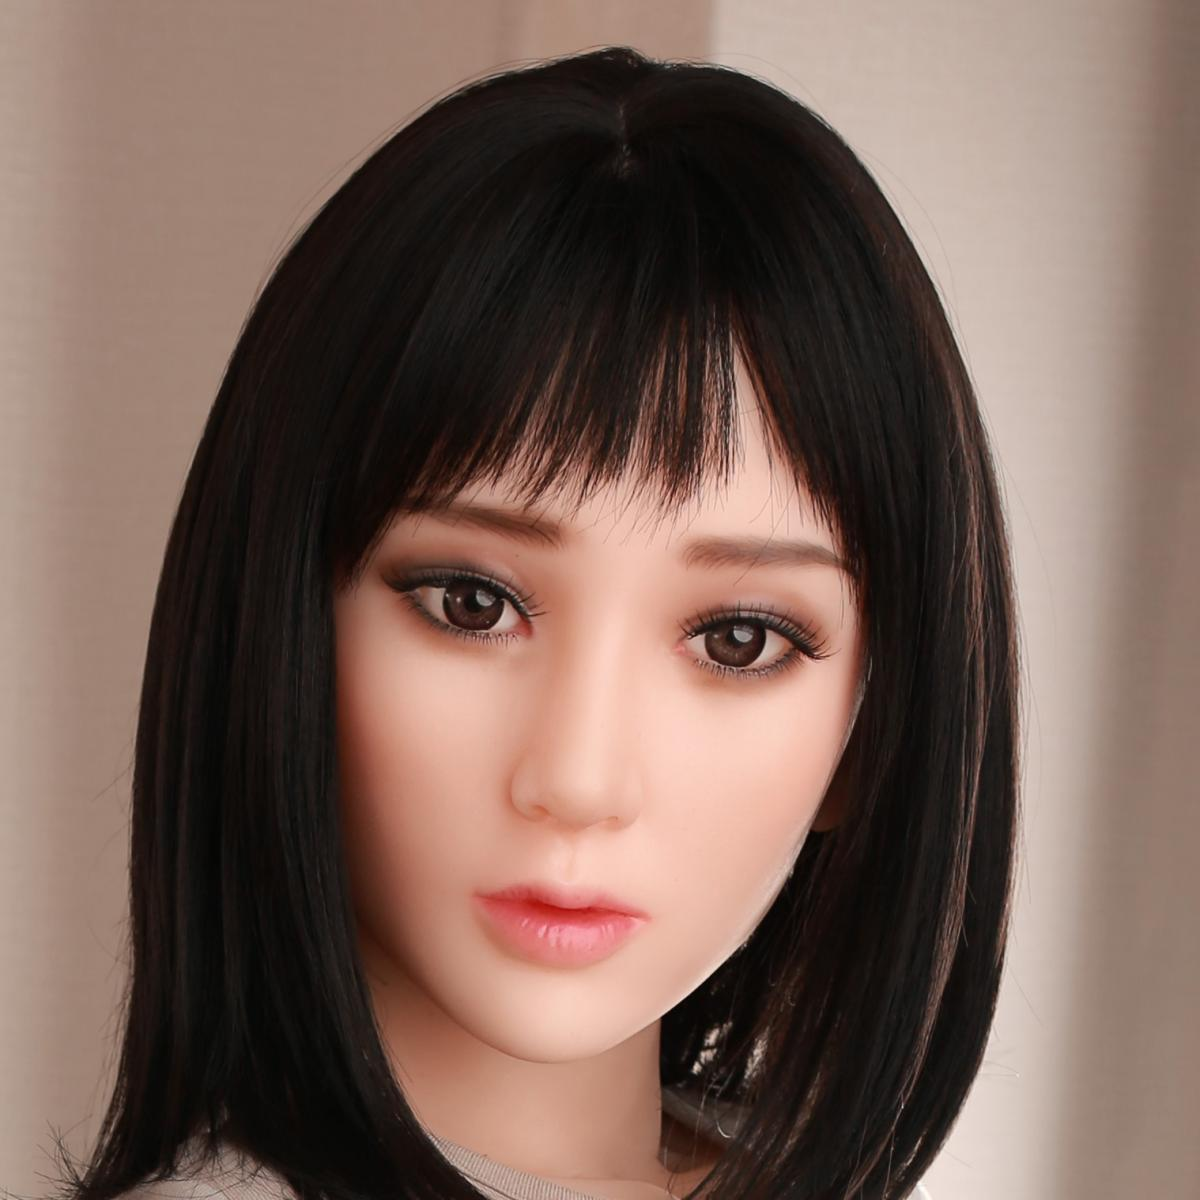 Neodoll Girlfriend Donna Head - Sex Doll Head - M16 Compatible - Tan